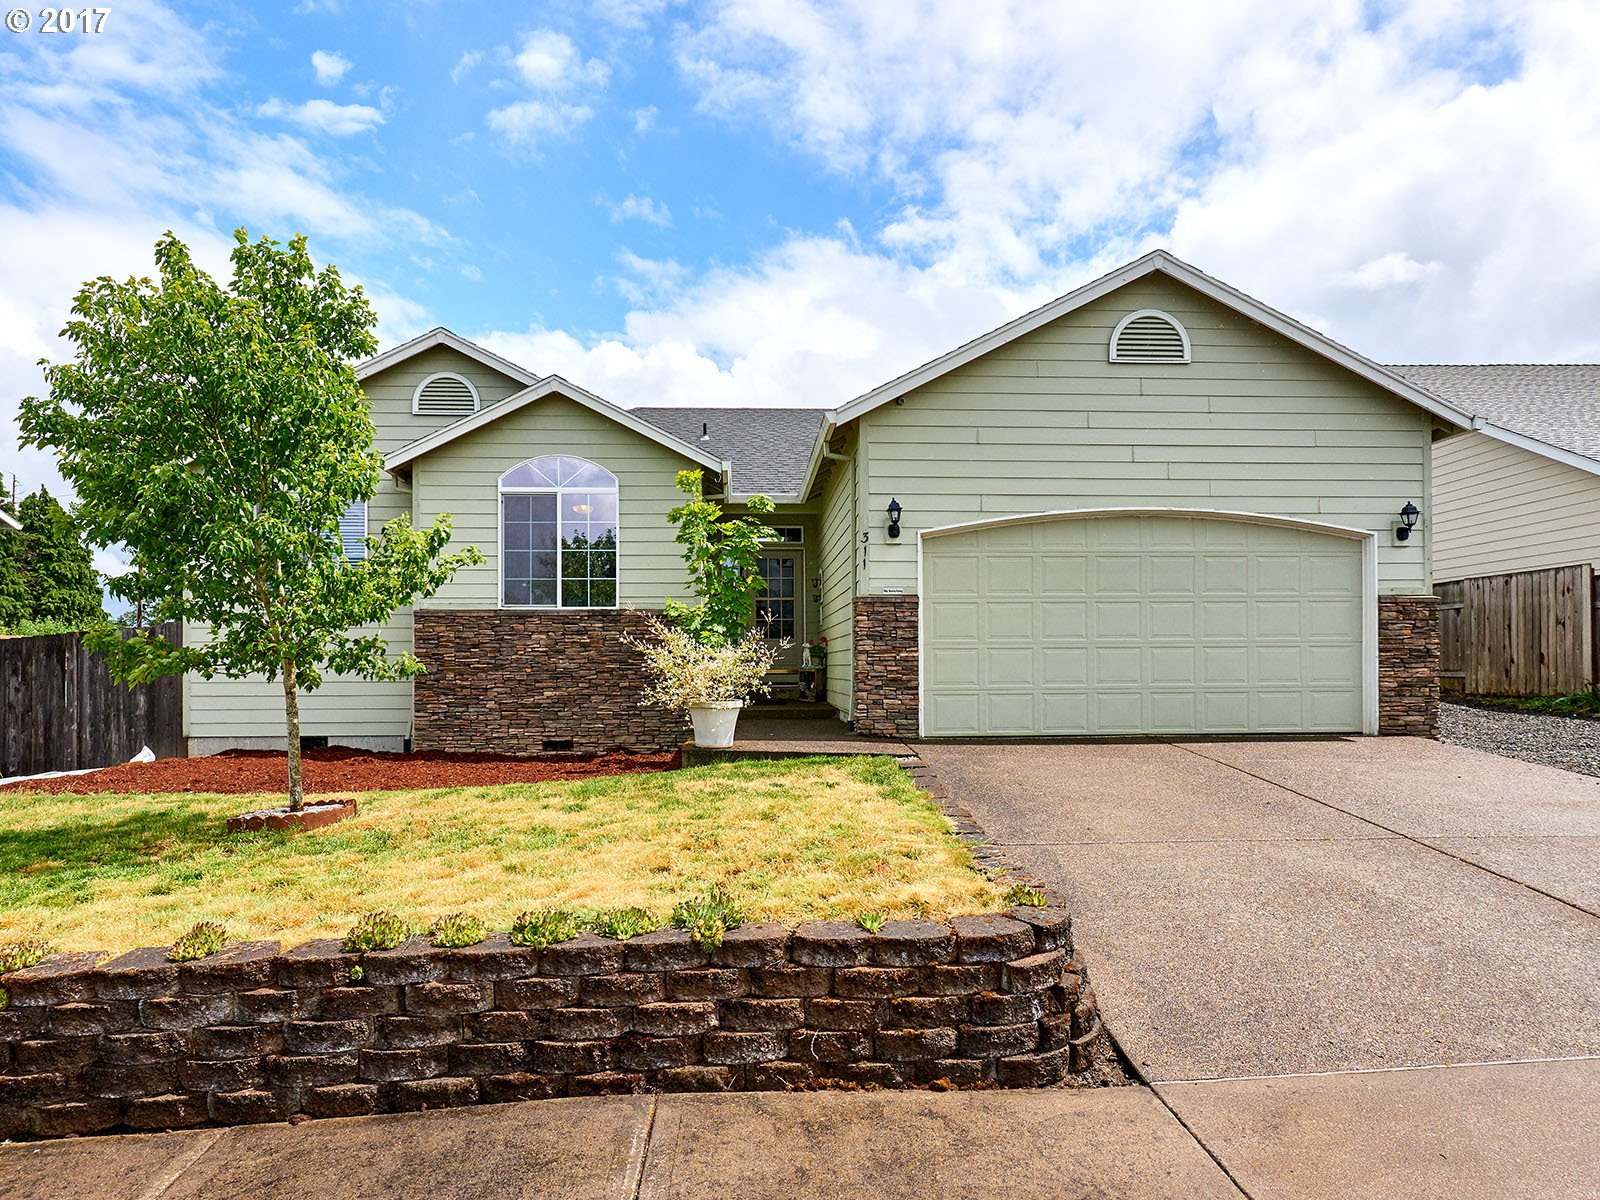 311 CHINOOK ST Molalla, OR 97038 - MLS #: 17515870